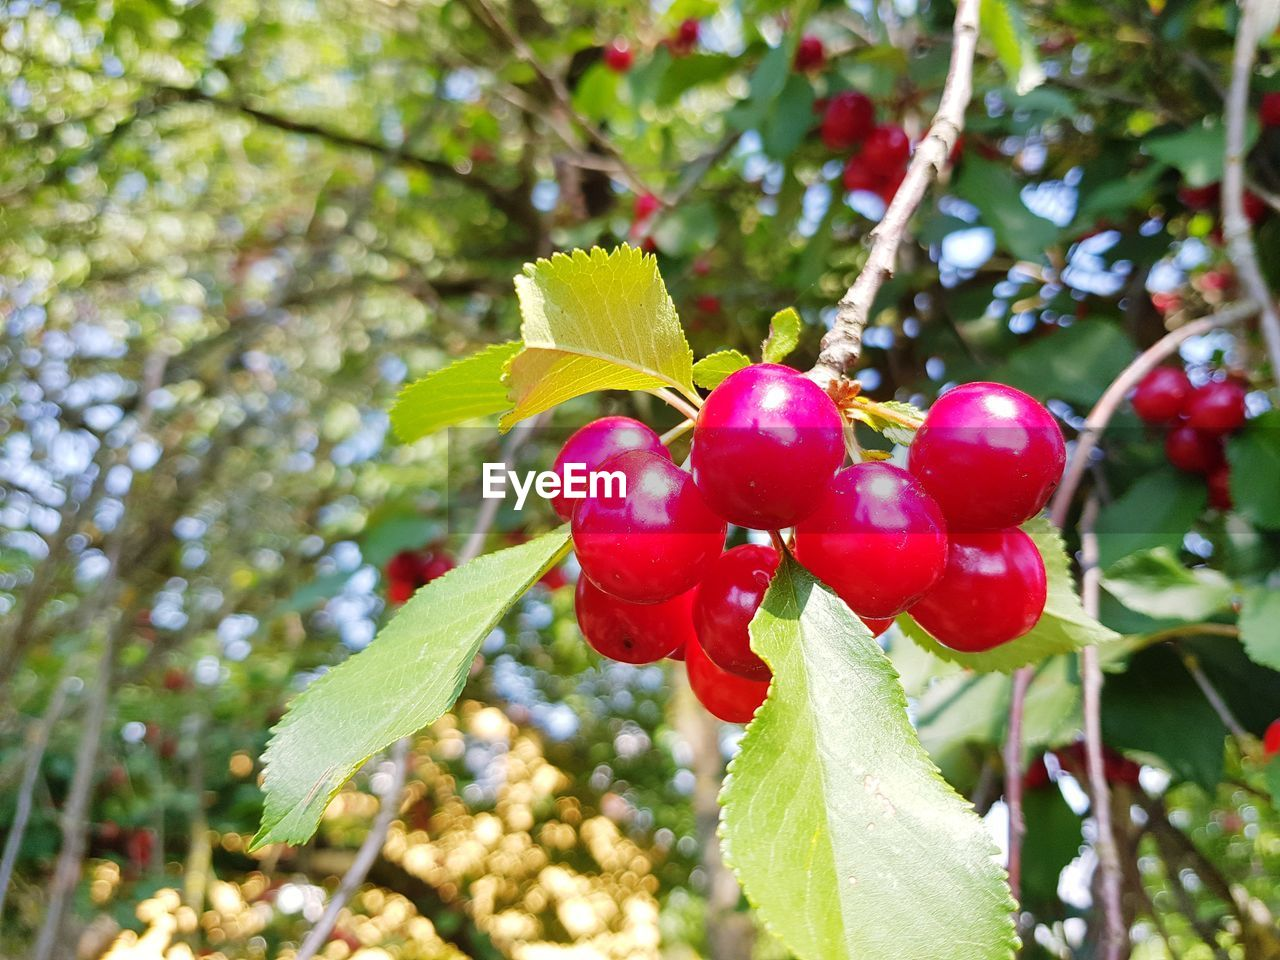 plant, growth, leaf, tree, food, food and drink, plant part, red, fruit, freshness, healthy eating, focus on foreground, nature, beauty in nature, close-up, green color, day, no people, branch, wellbeing, outdoors, ripe, cherry tree, red currant, rowanberry